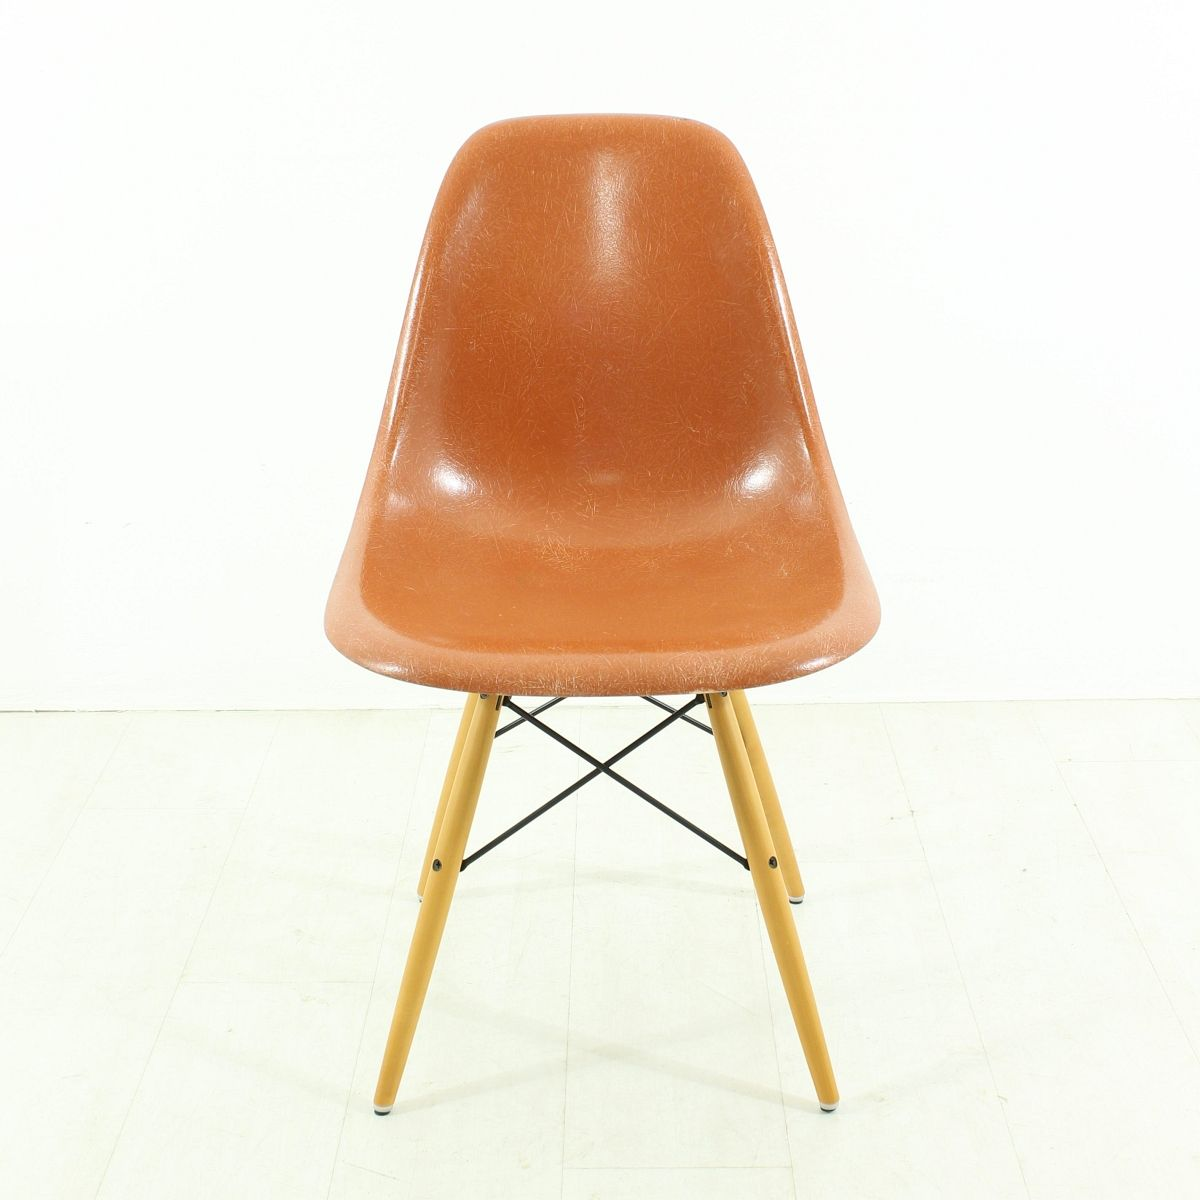 Chaise terracotta vintage par charles ray eames pour for Vente chaise eames